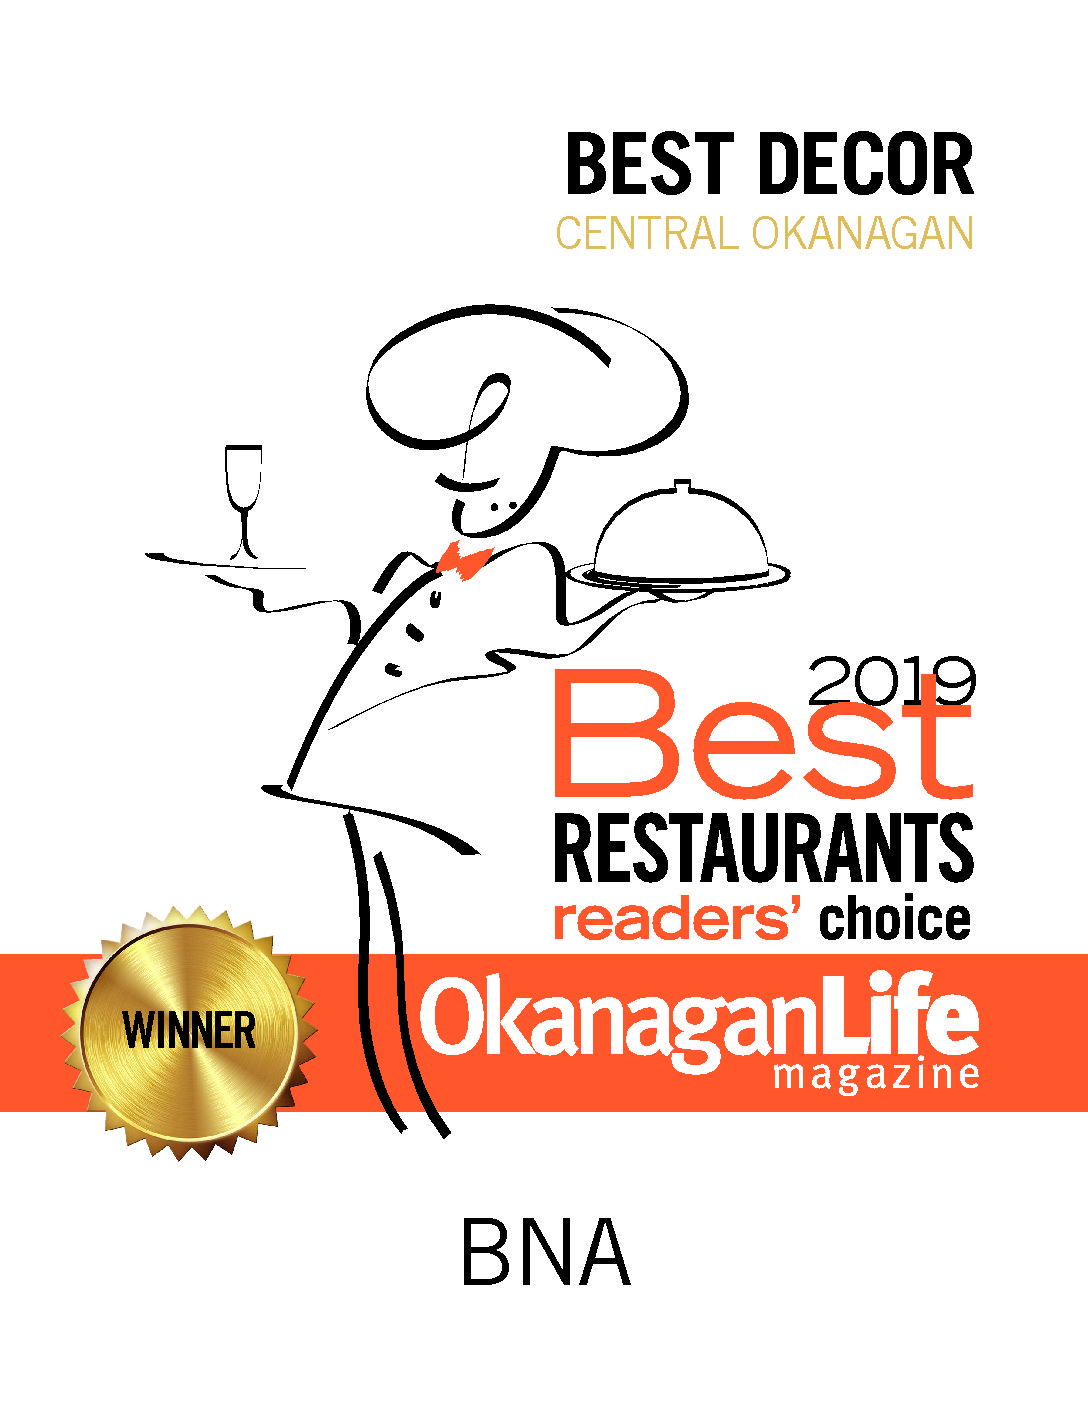 Best decor award-winning restaurants